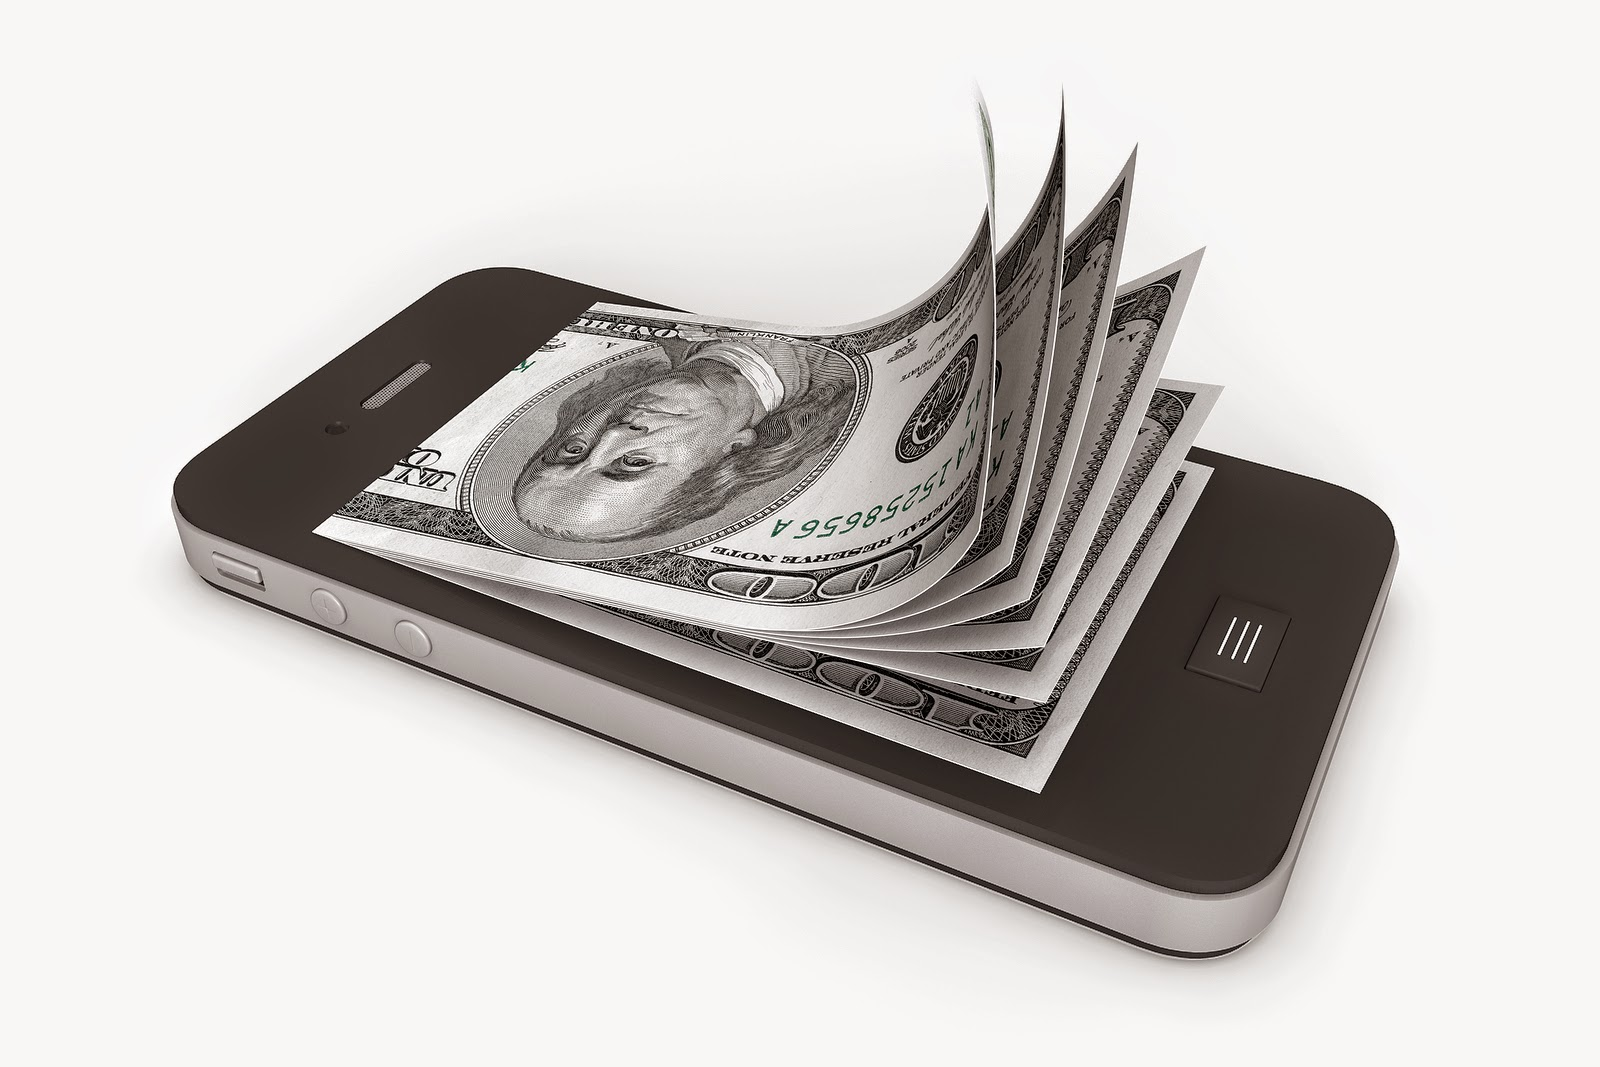 5 tips to save money from your Smartphone